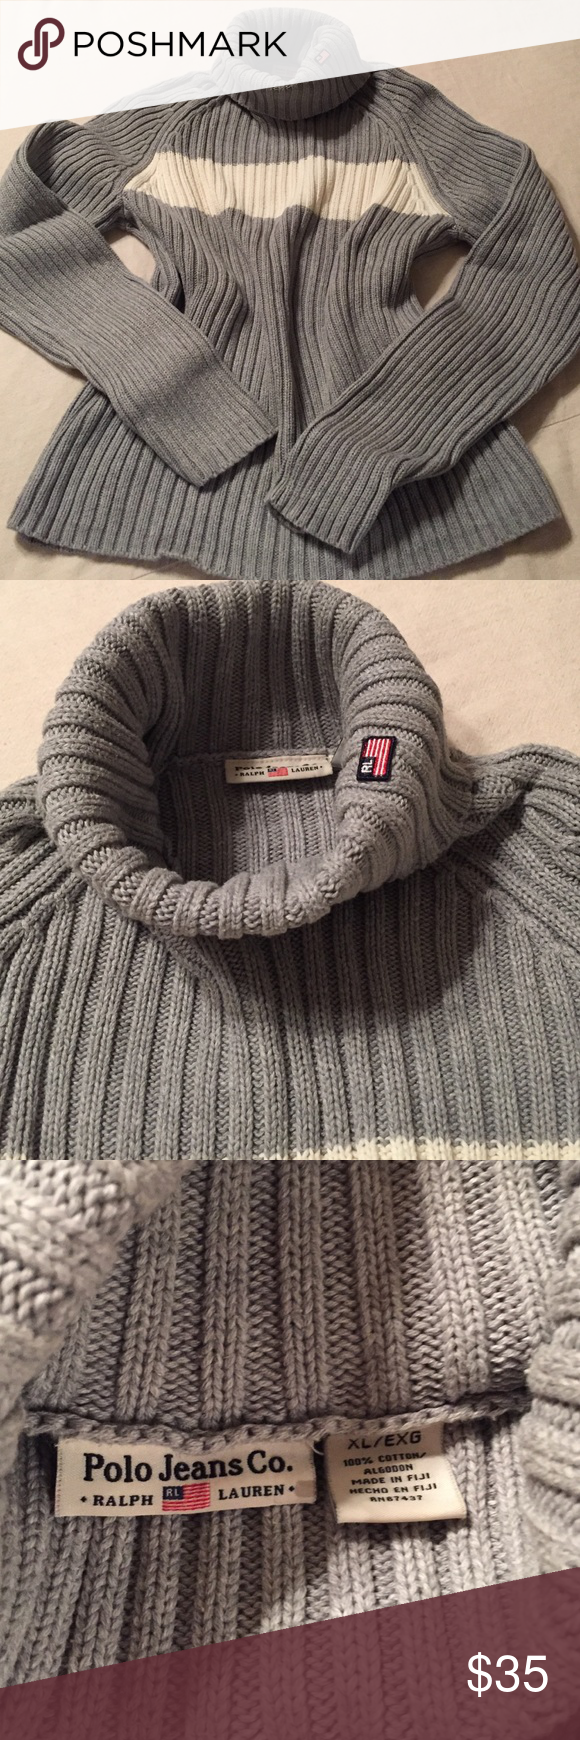 Turtleneck sweater Turtleneck sweater from Ralph Lauren. Gray with solid ivory stripe. Size XL. Ralph Lauren Sweaters Cowl & Turtlenecks